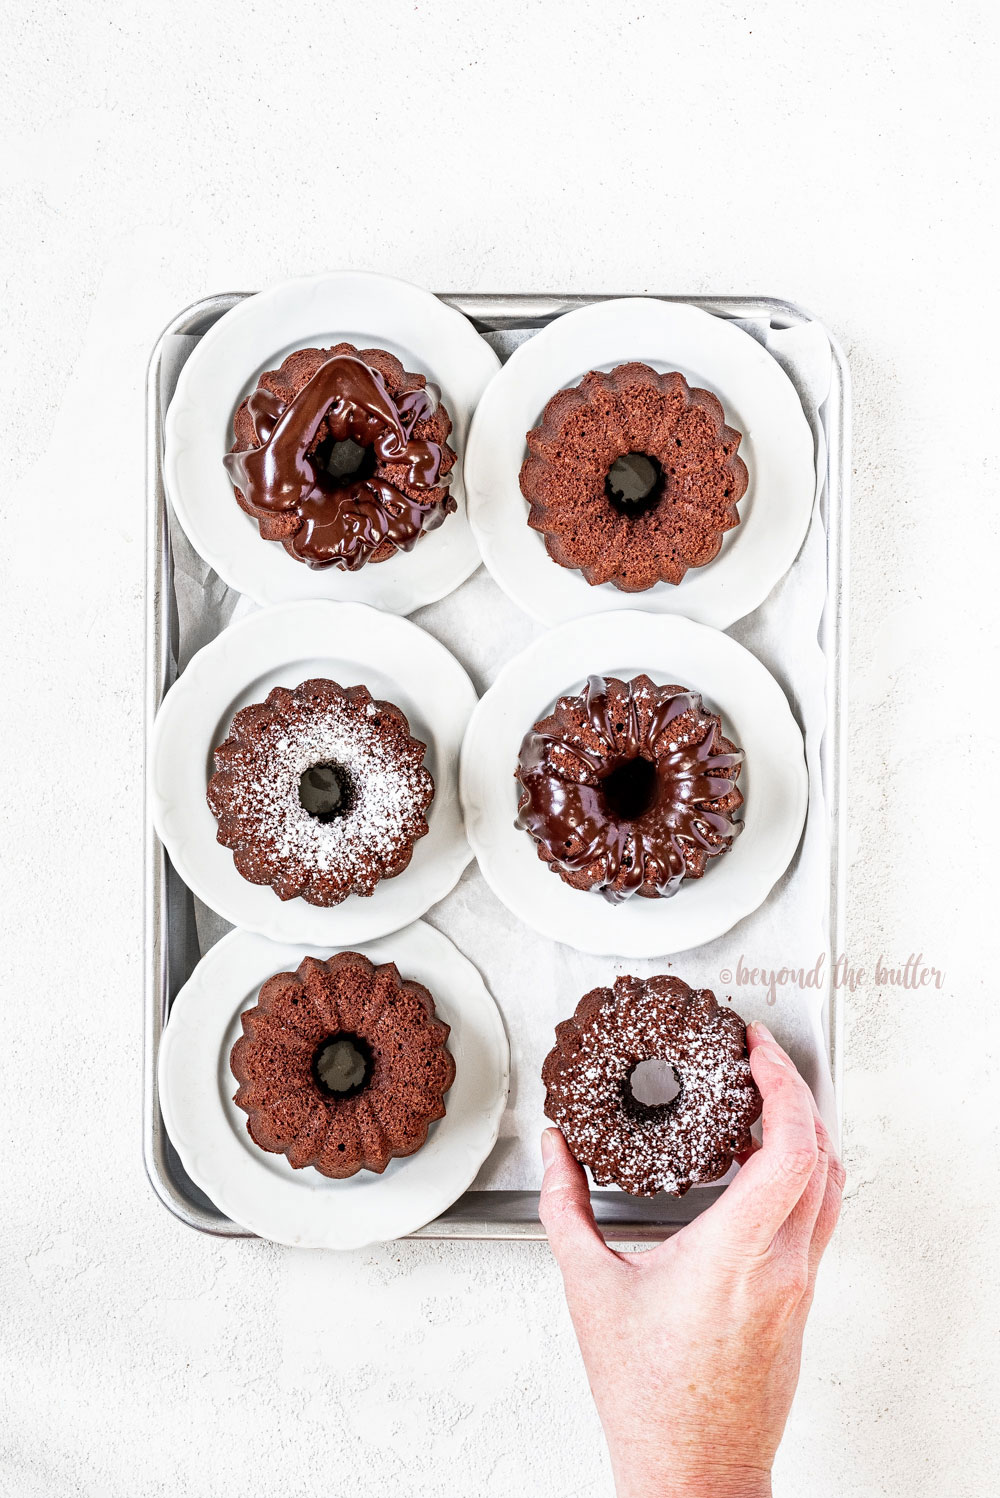 Mini Bundt Chocolate Pound Cakes   All Images © Beyond the Butter, LLC